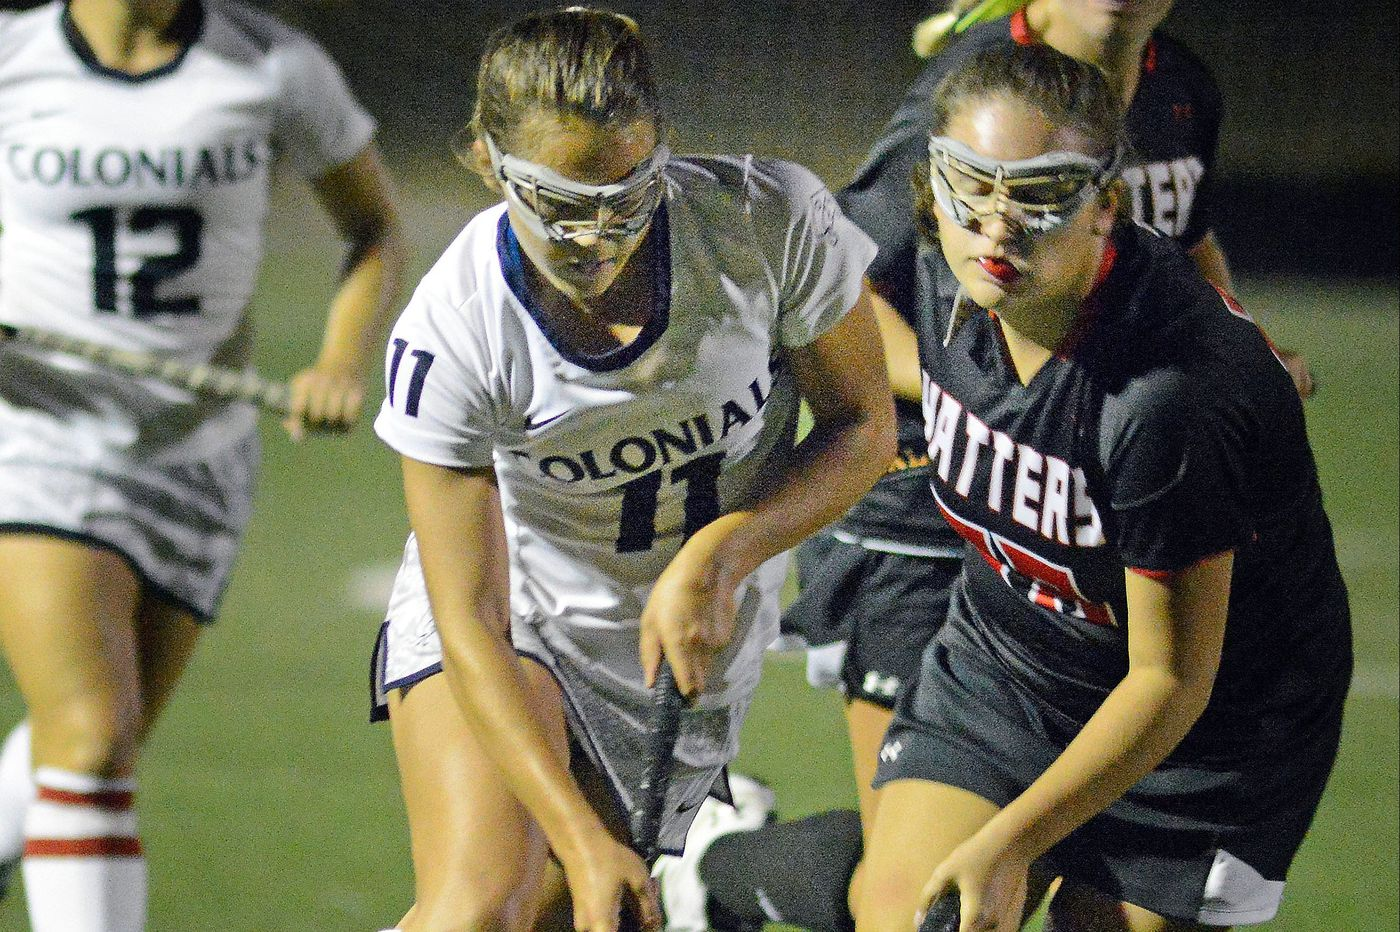 Monday's Southeastern Pa. roundup: Plymouth Whitemarsh field hockey stays undefeated